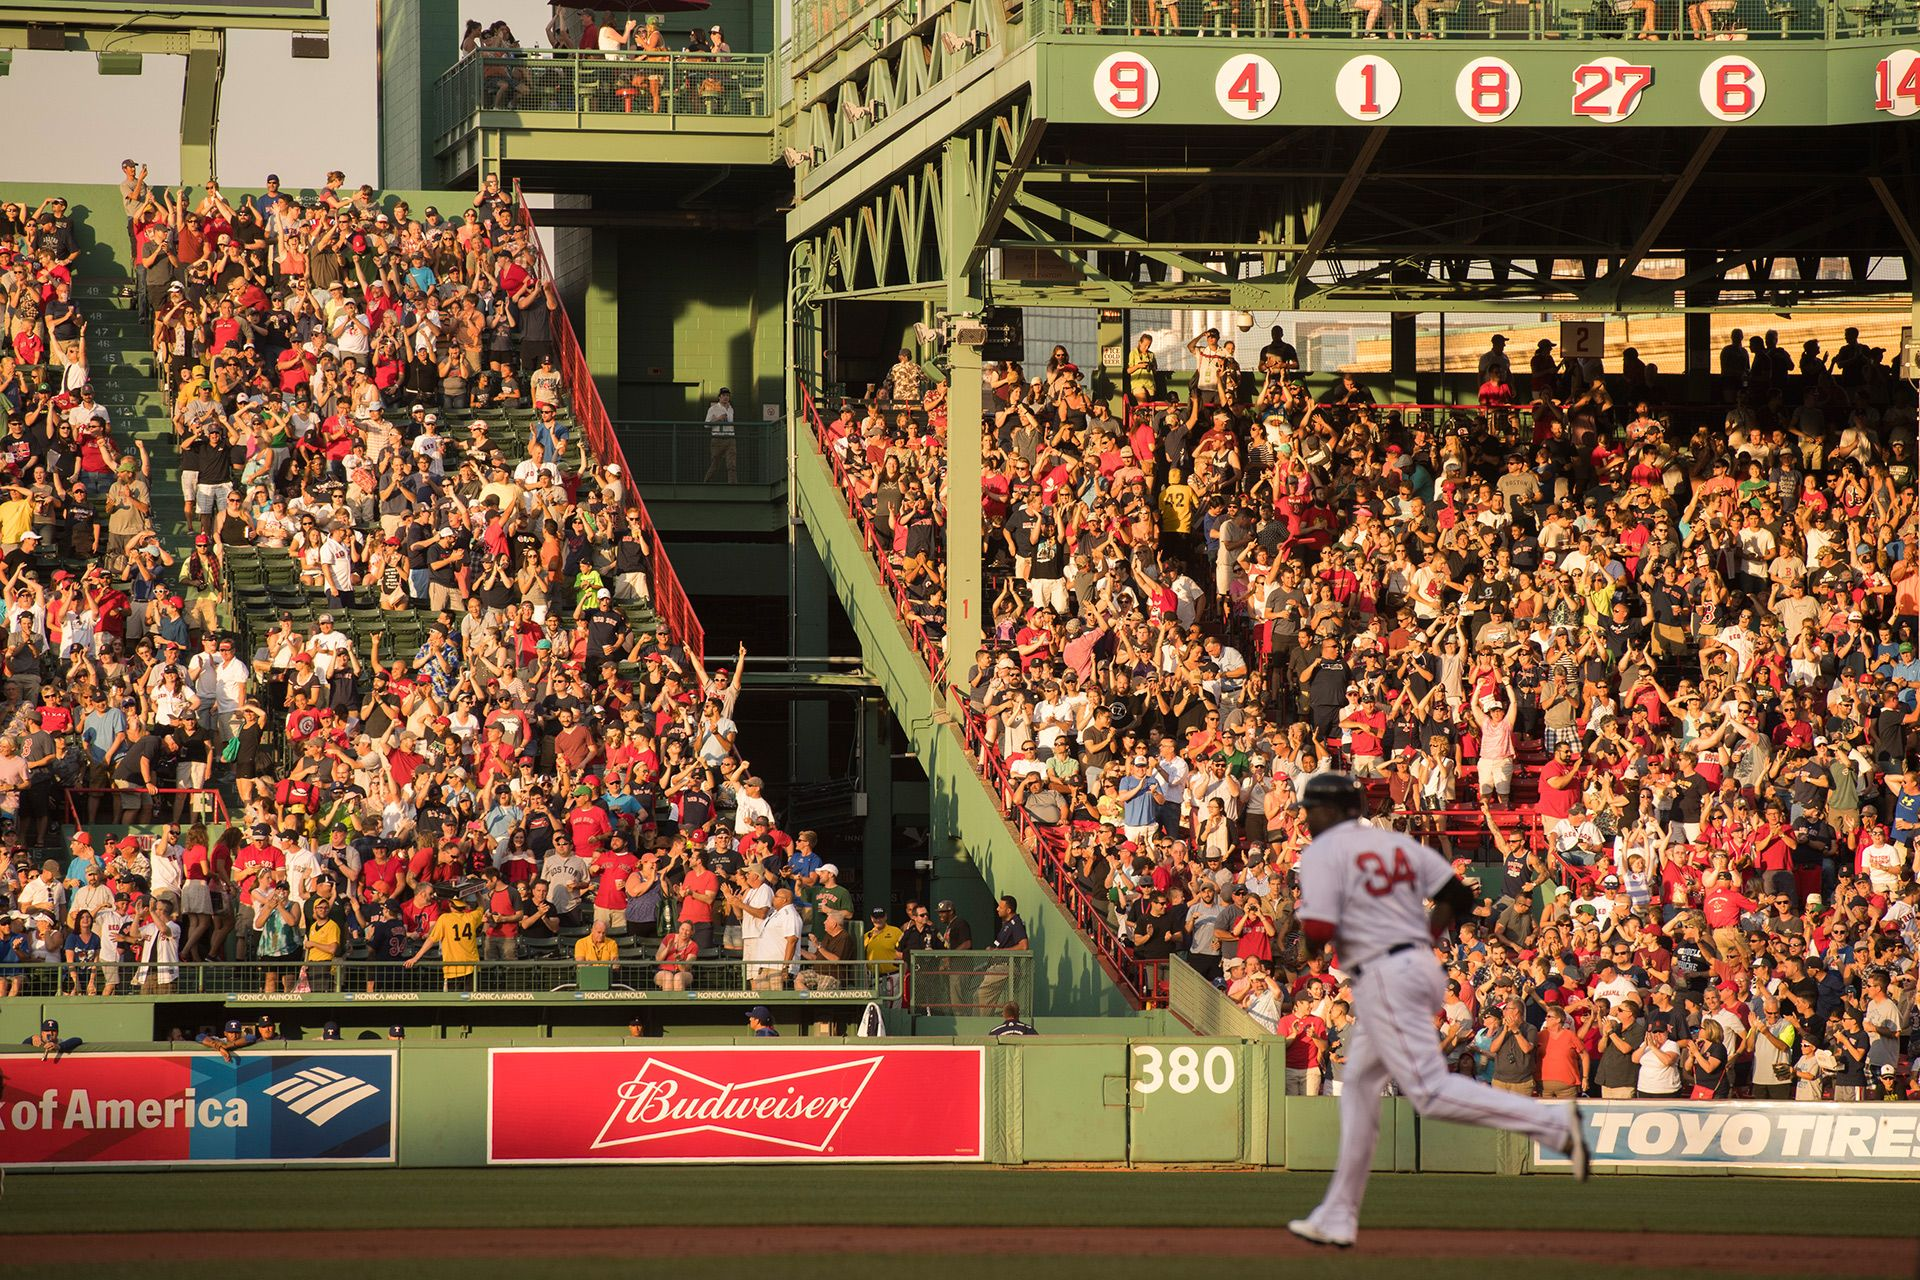 David Ortiz hits another home run at Fenway Park | Old Ball Game ...